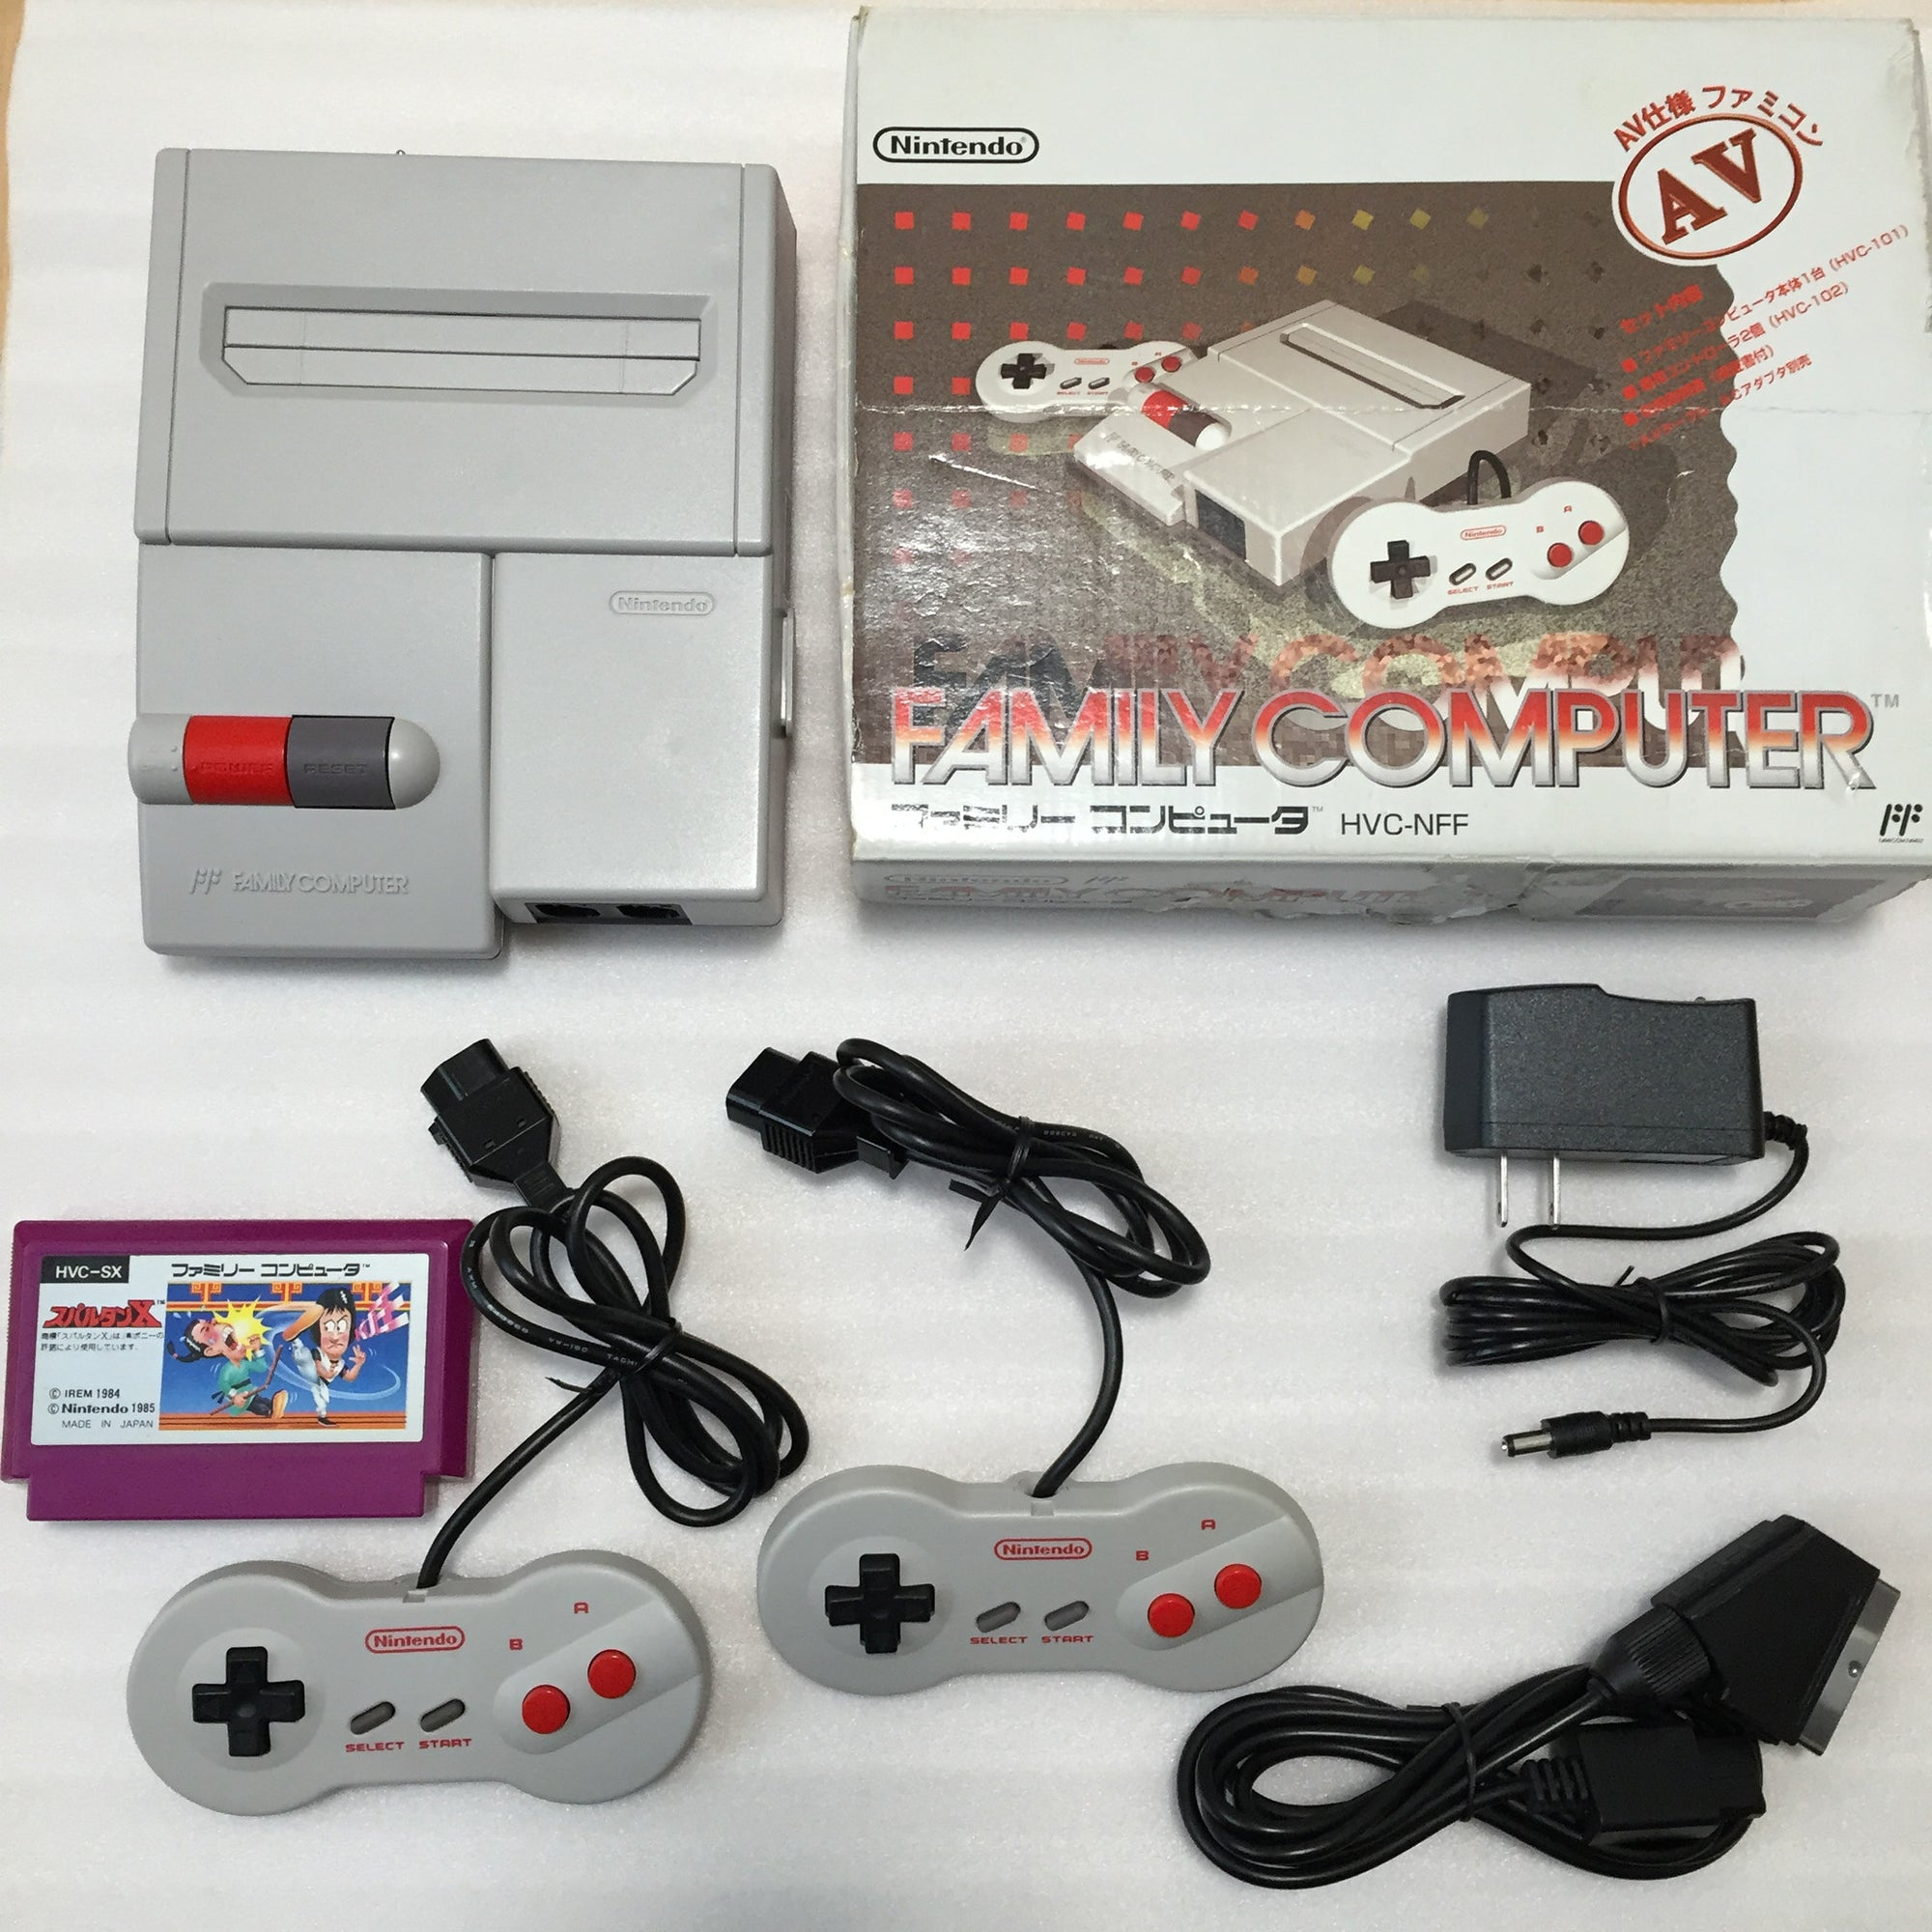 Boxed NESRGB Modded AV Famicom - Spartan X set